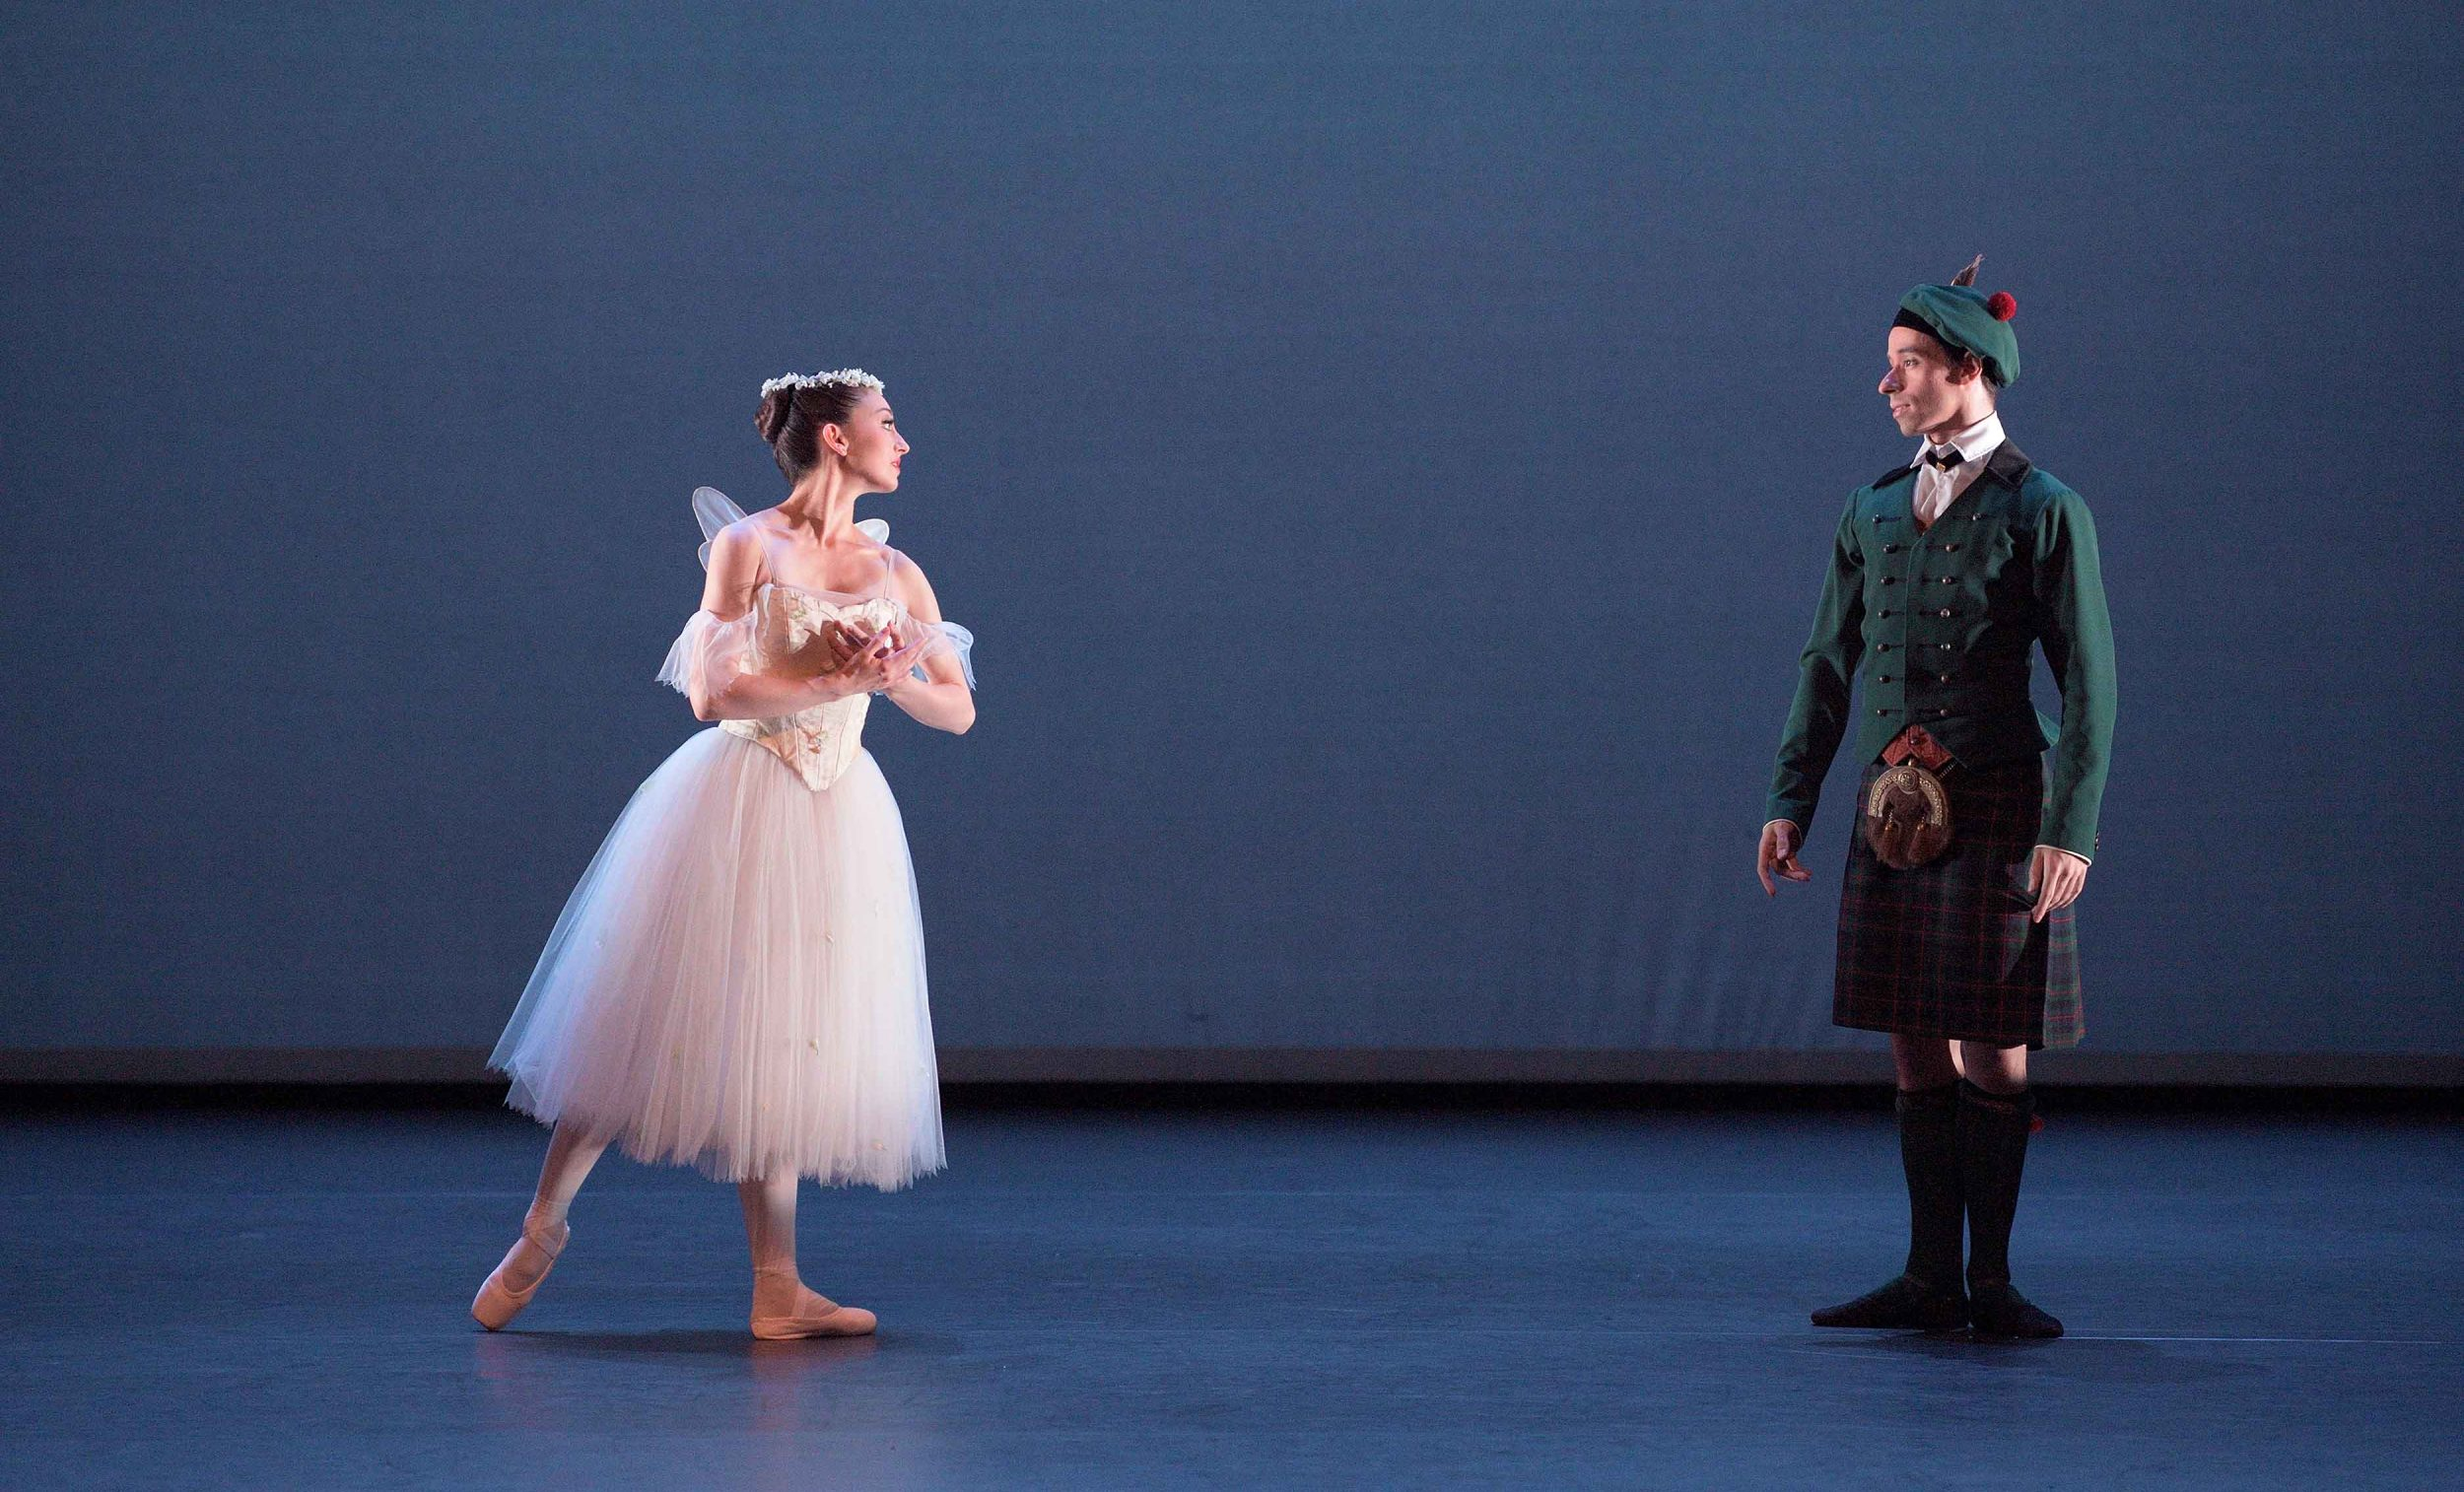 Madison-Keesler-and-Guilherme-Menezes-performing-La-Sylphide-pas-de-deux-©-Laurent-Liotardo-(2)